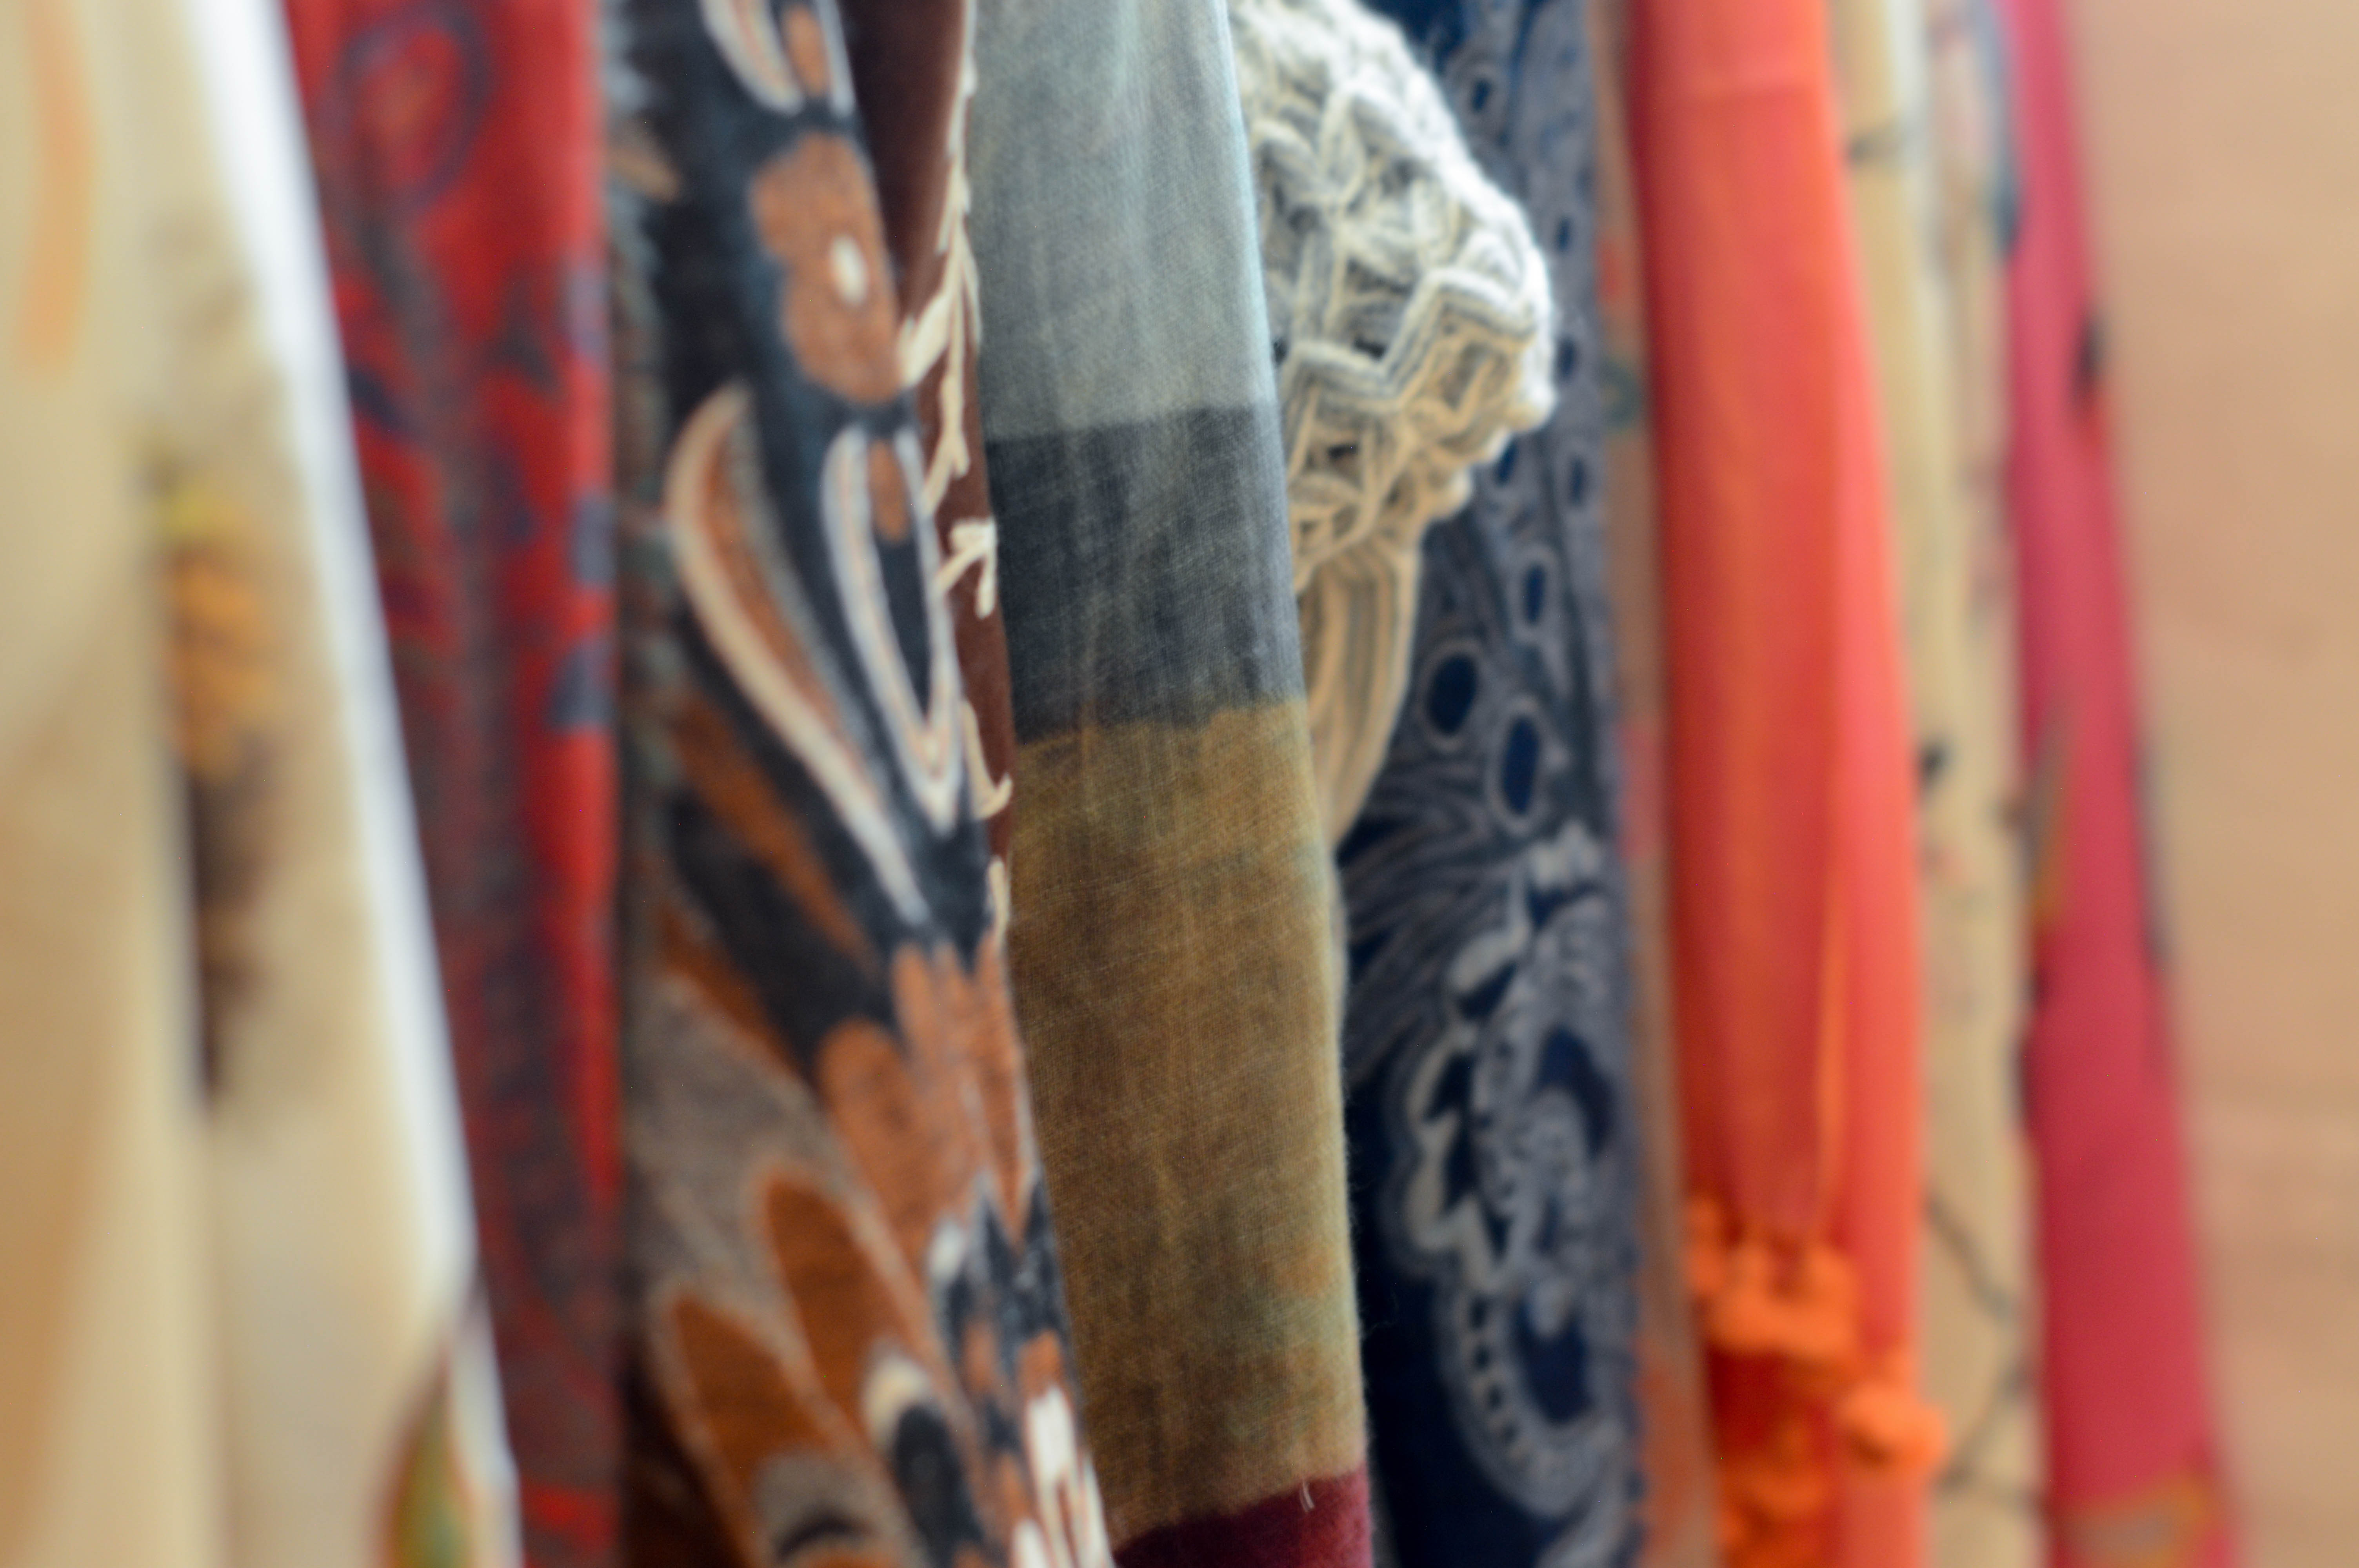 A display of scarves in the Museum Shop.